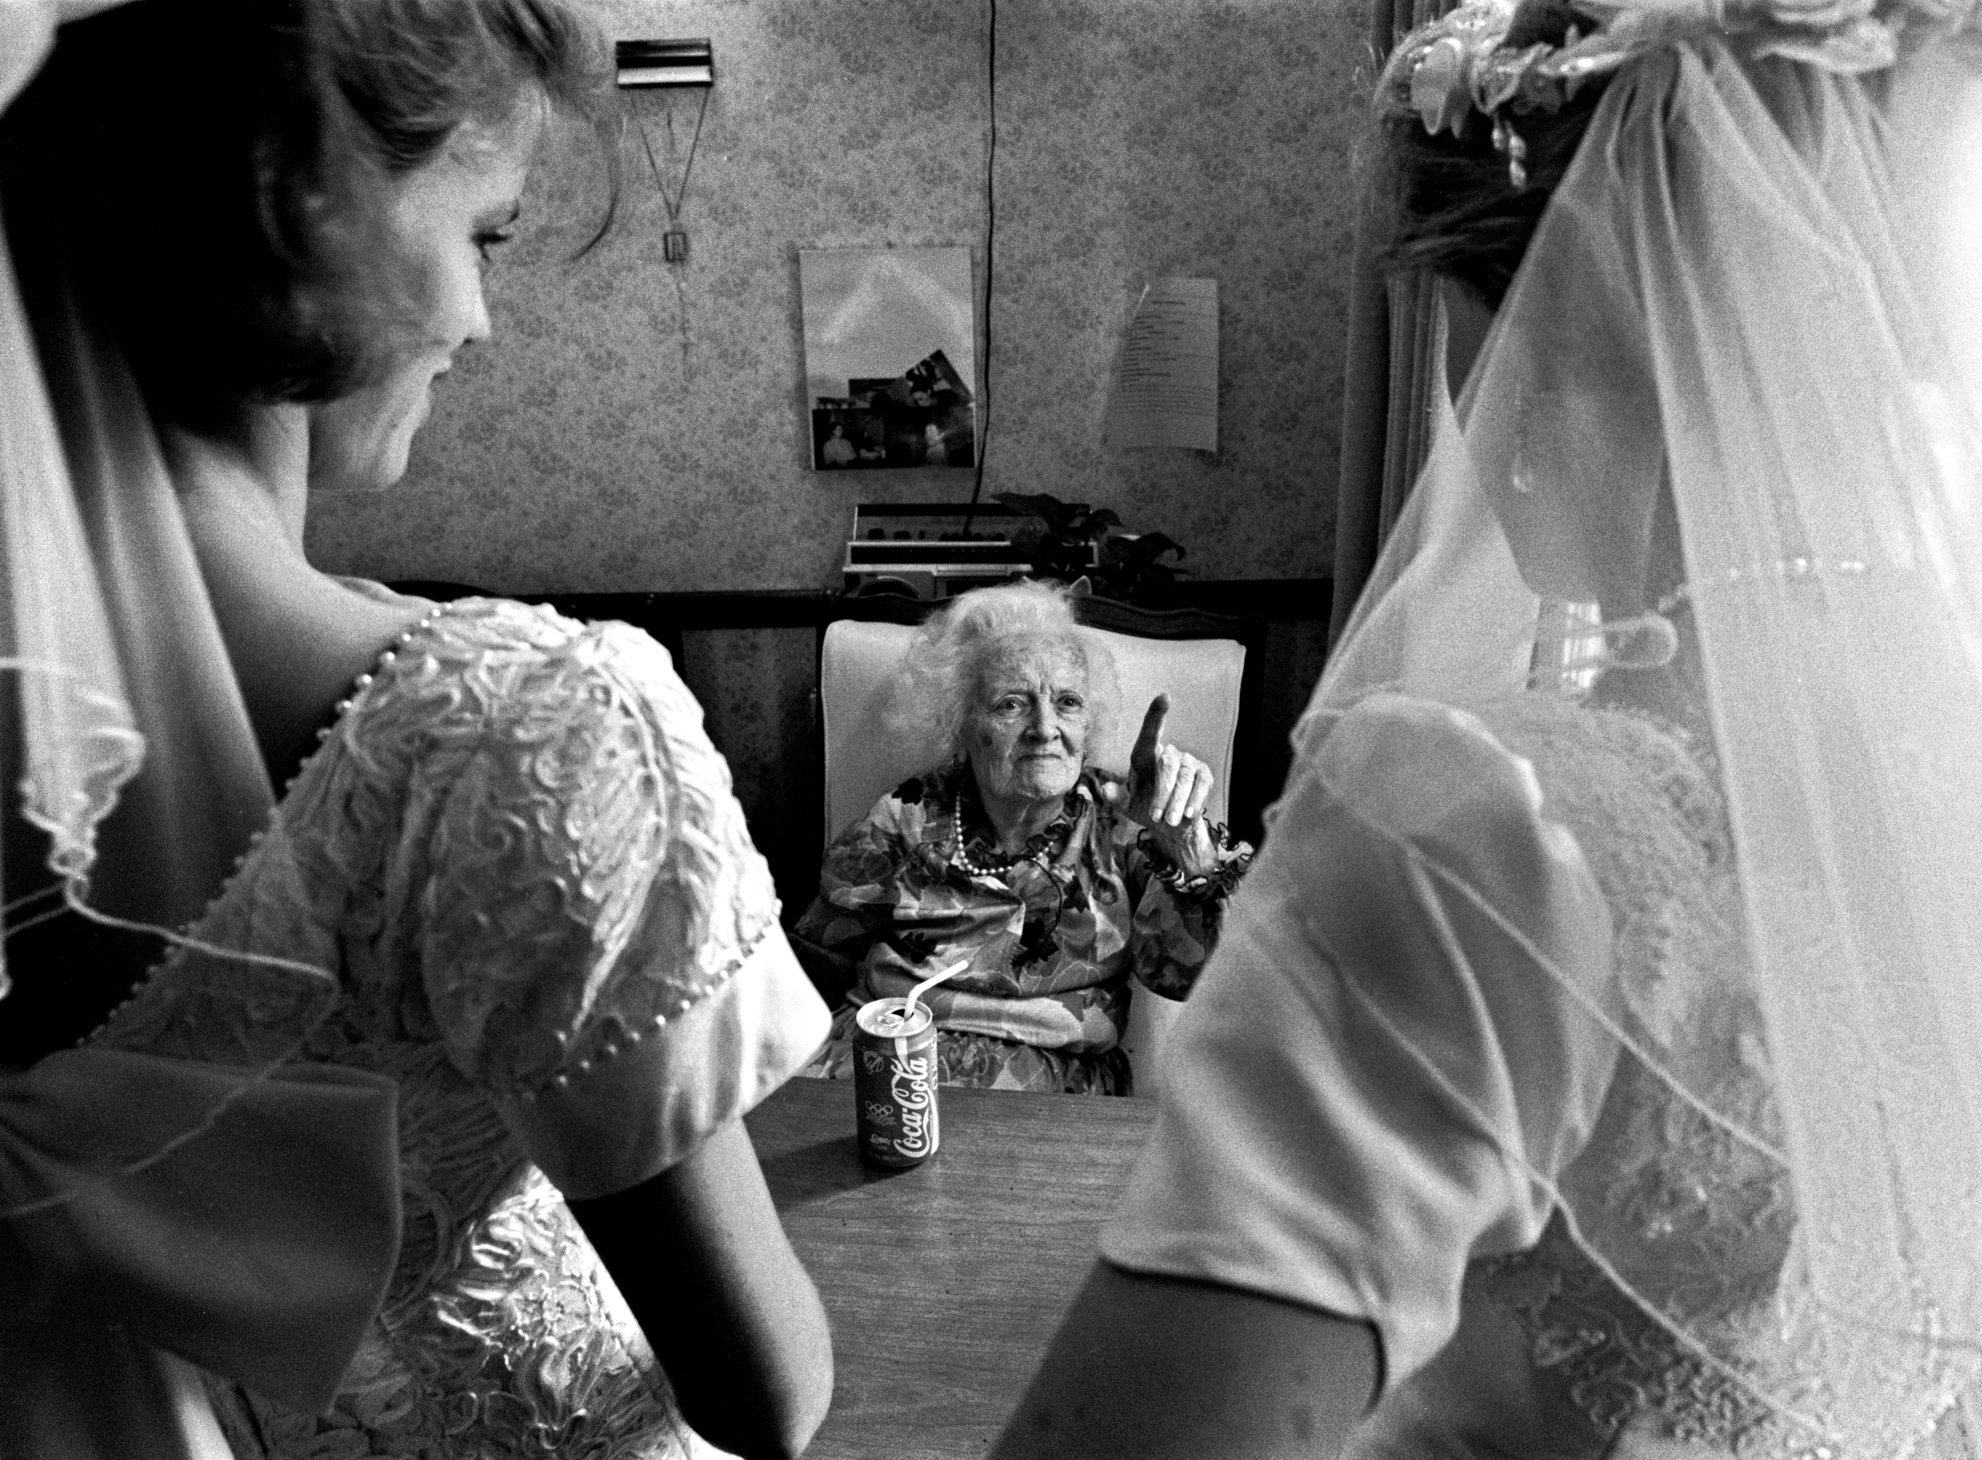 This was not a lesbian wedding, but two sisters having a double wedding. Before the ceremony they went to visit their grandma in a nursing home. It was kinda like an inspection. I like capturing these moments in life.© Nancy Andrews/The Washington Post